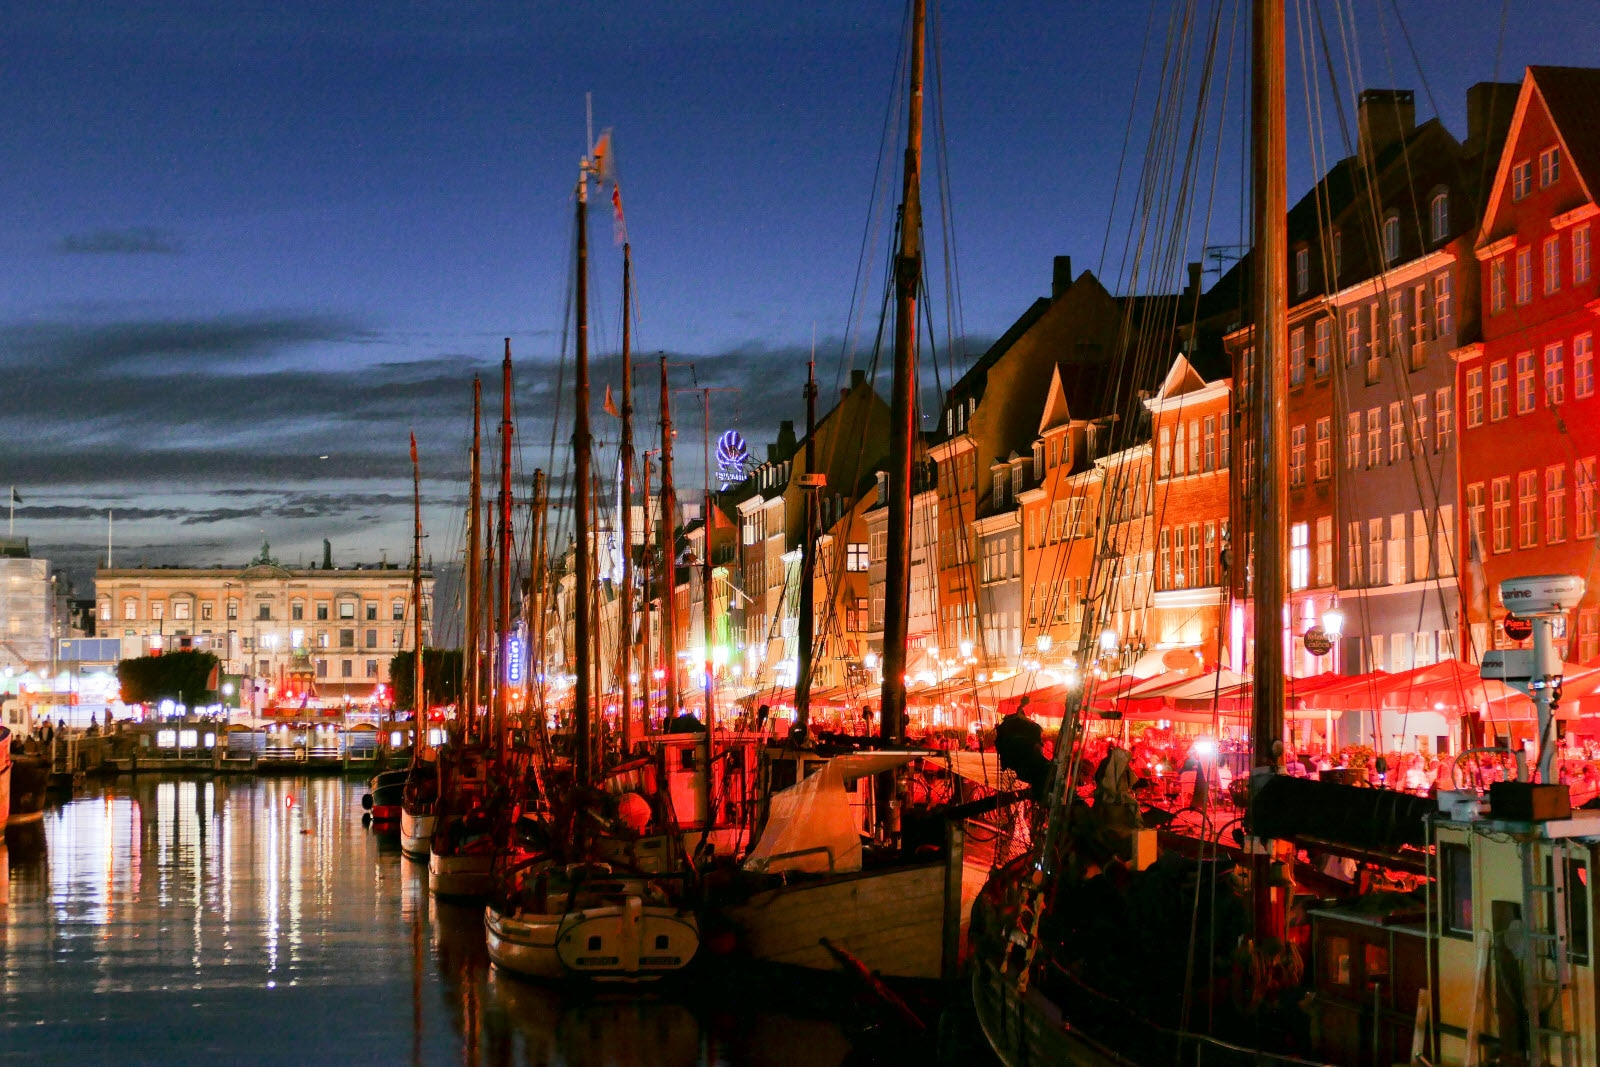 Nyhavn and the restaurants by night. Boats along the restaurants.